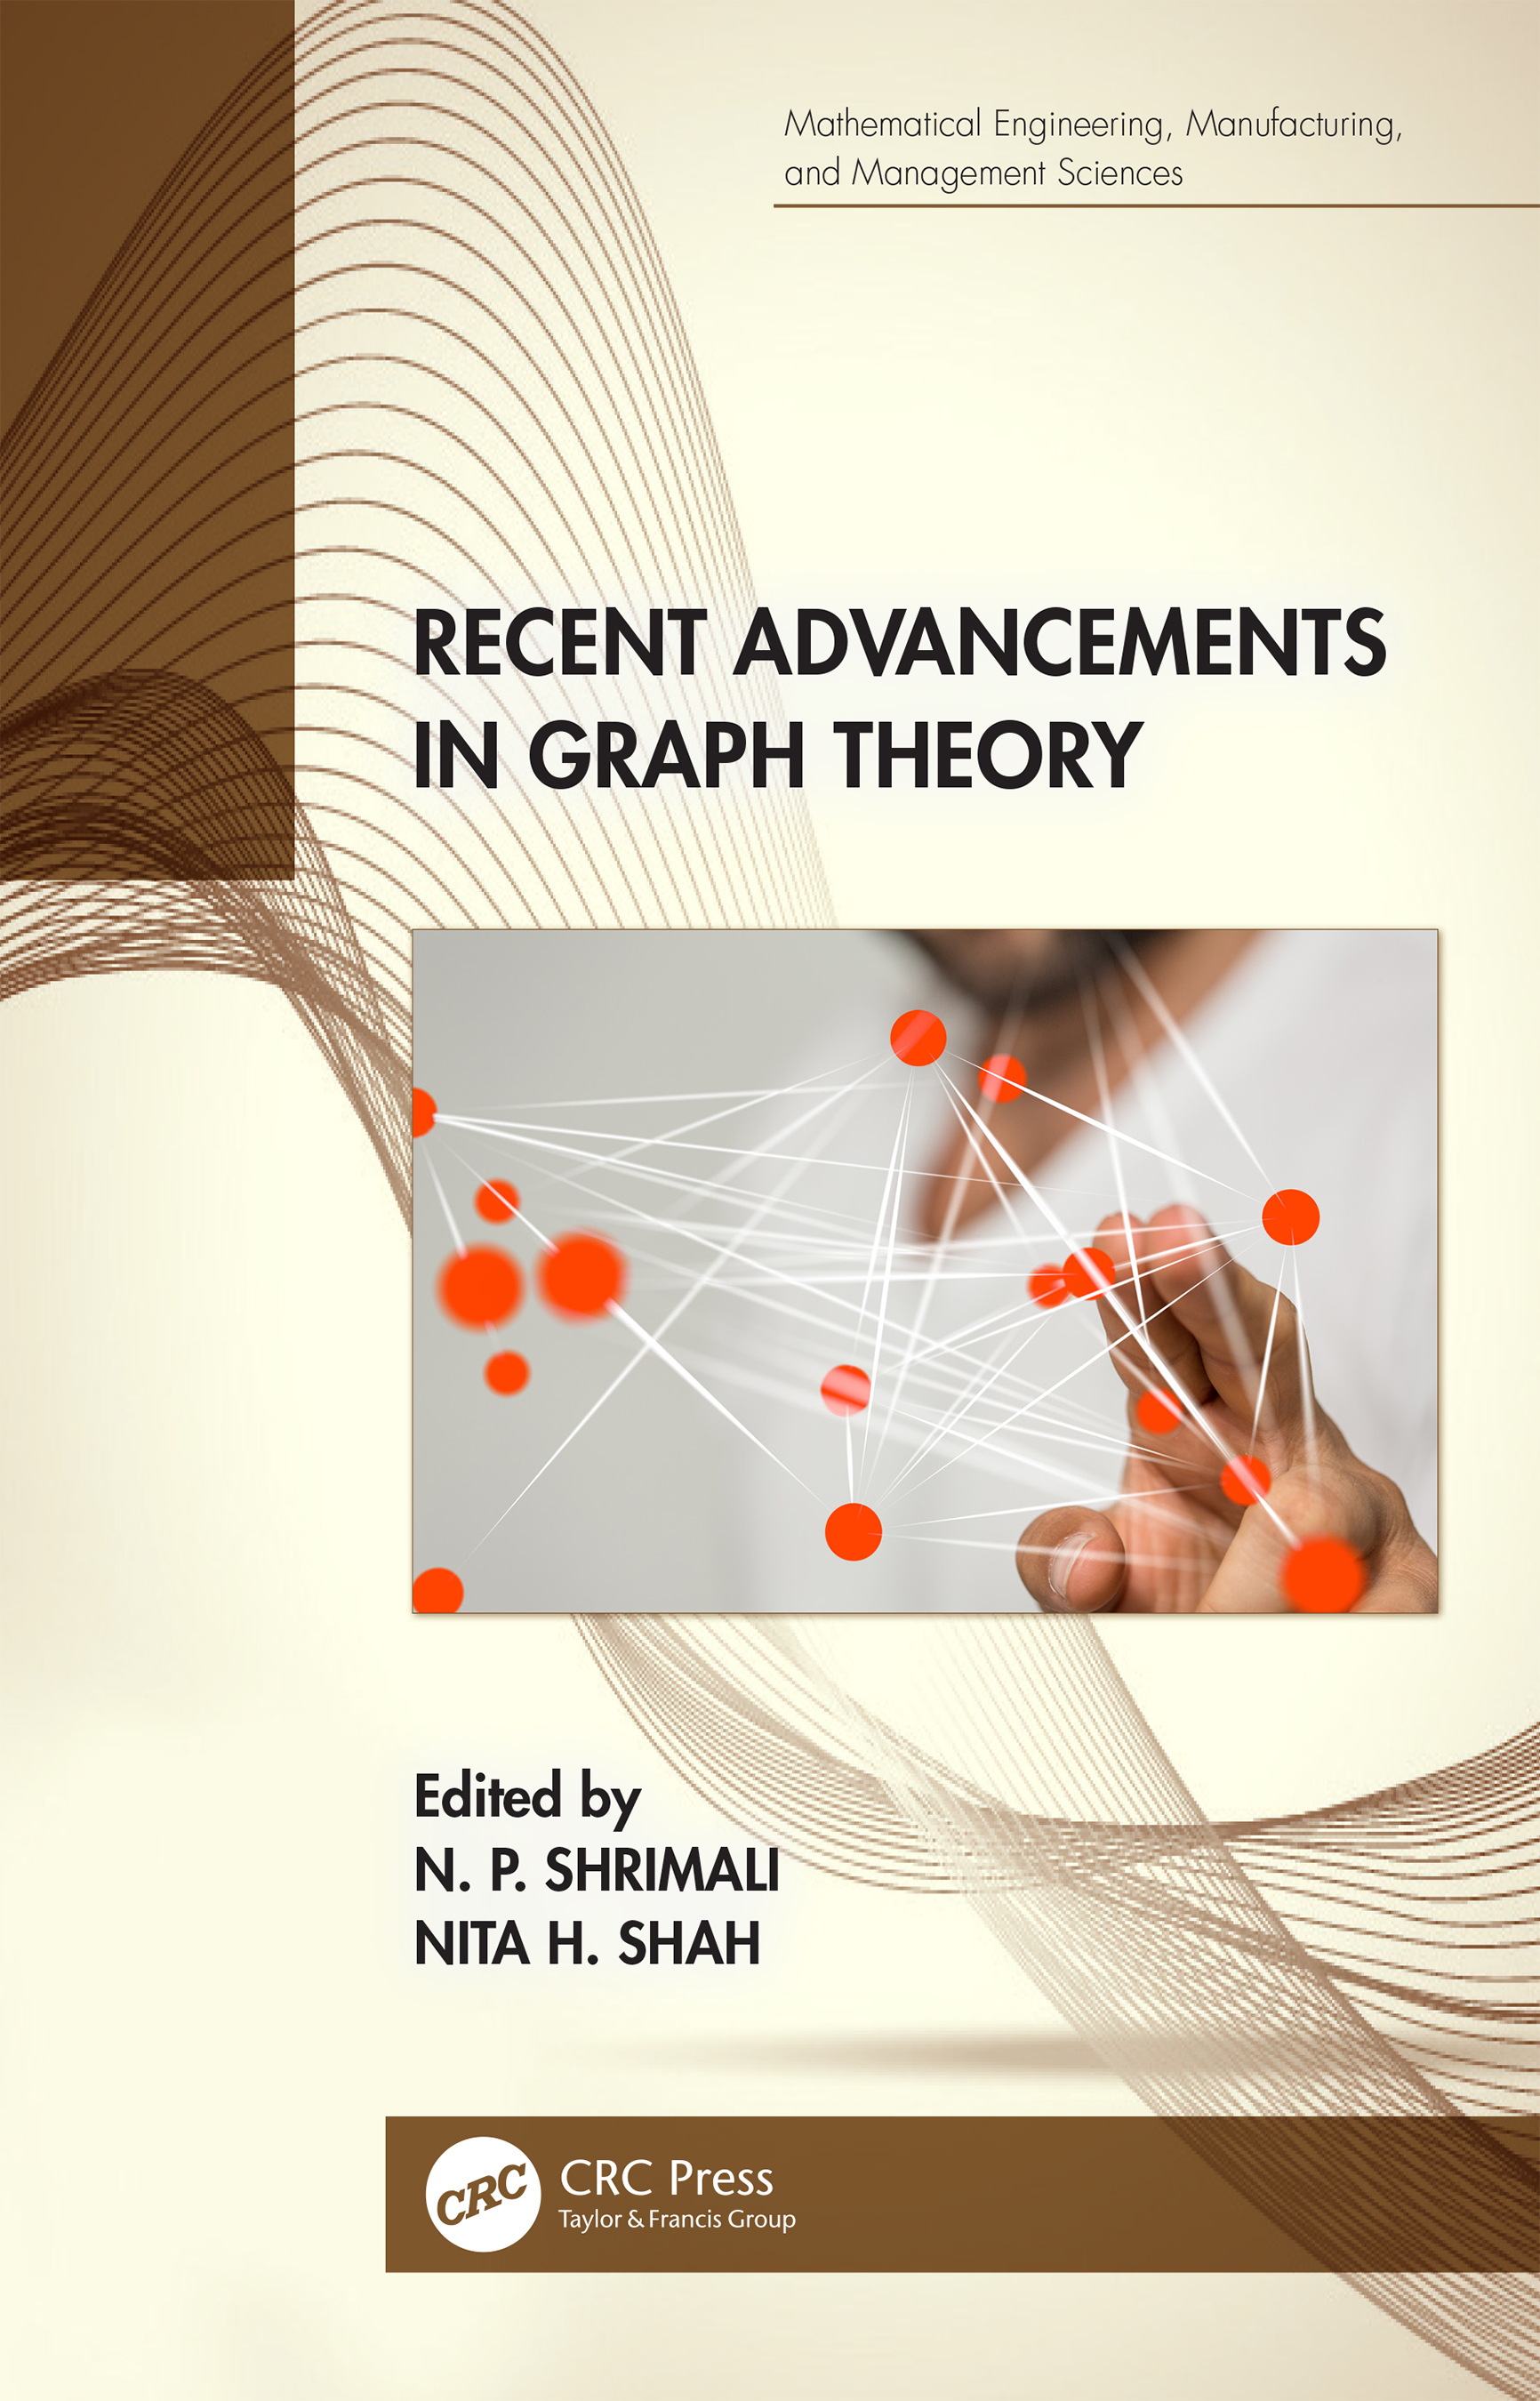 Recent Advancements in Graph Theory